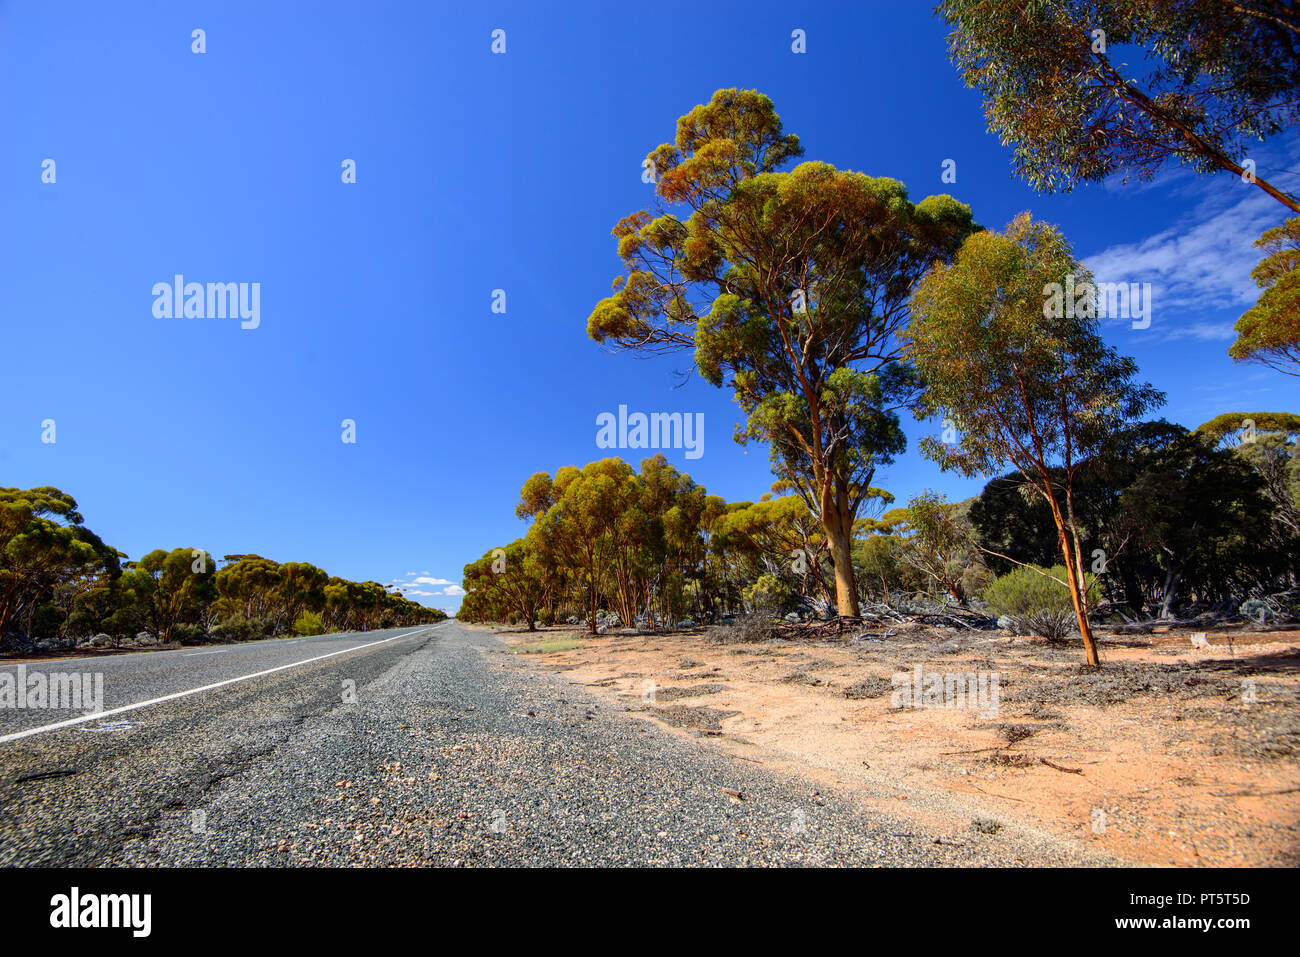 Highway leading through an eucalyptus forest, Western Australia, Australia - Stock Image